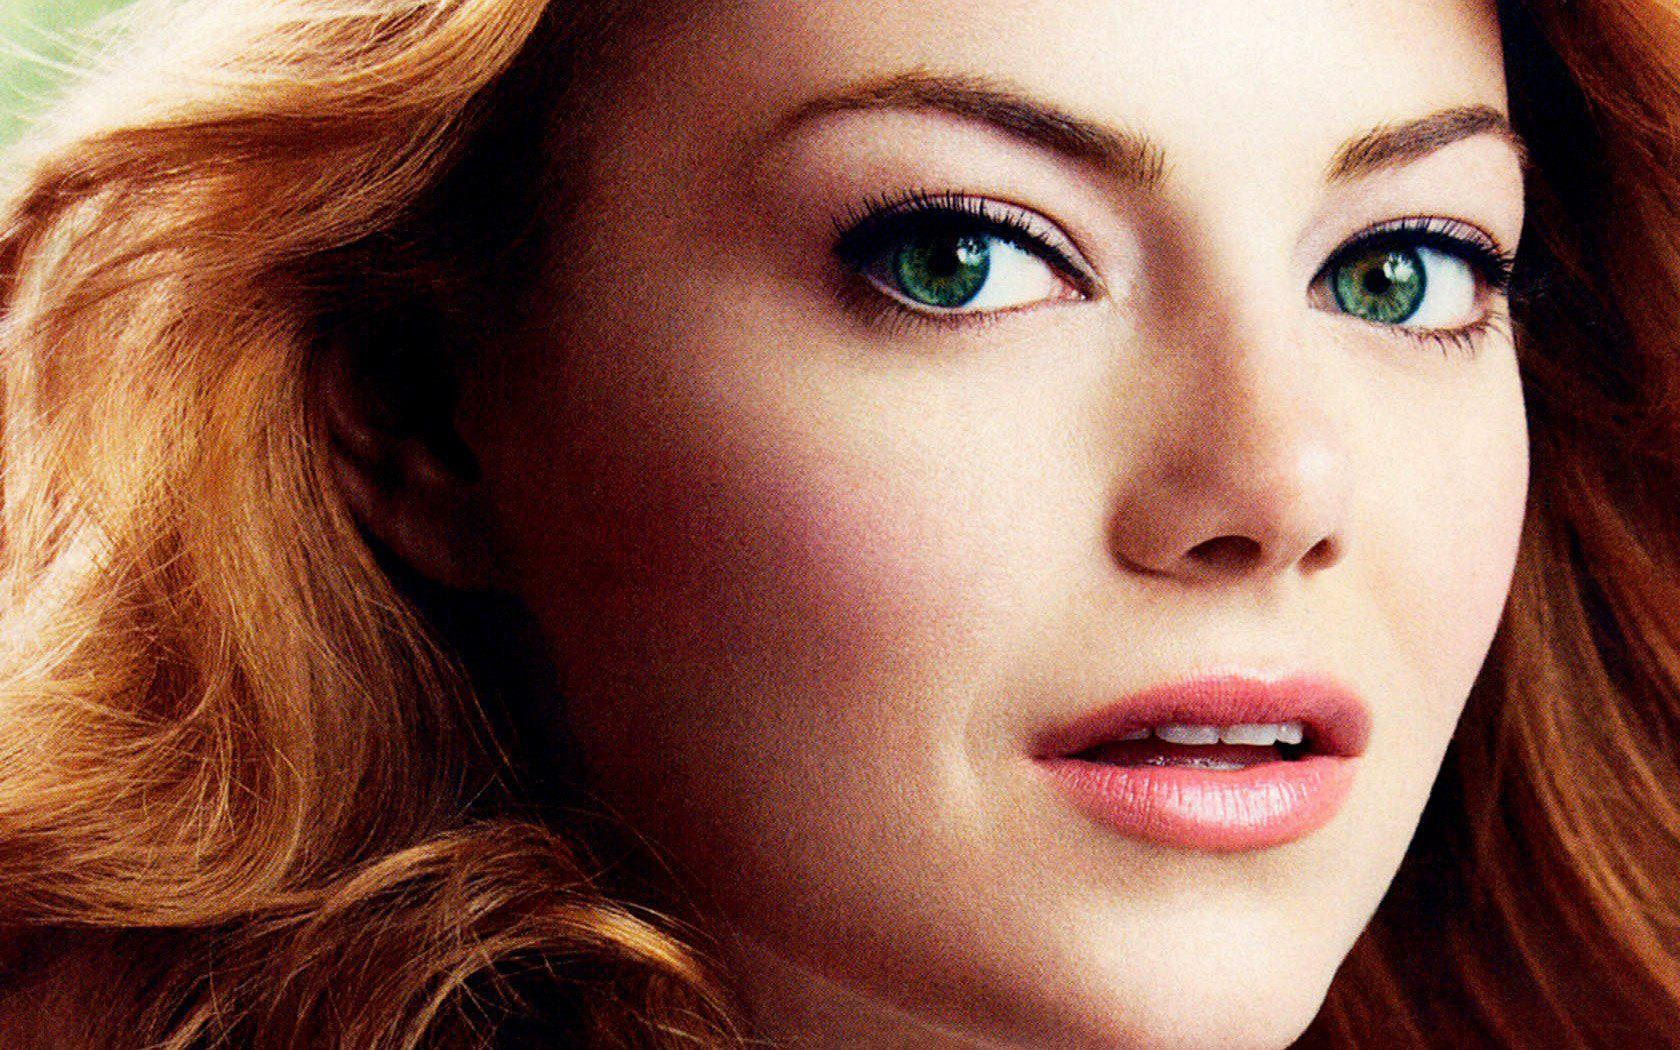 Emma Stone Hair Color |High Definition Wallpapers, High Definition ...